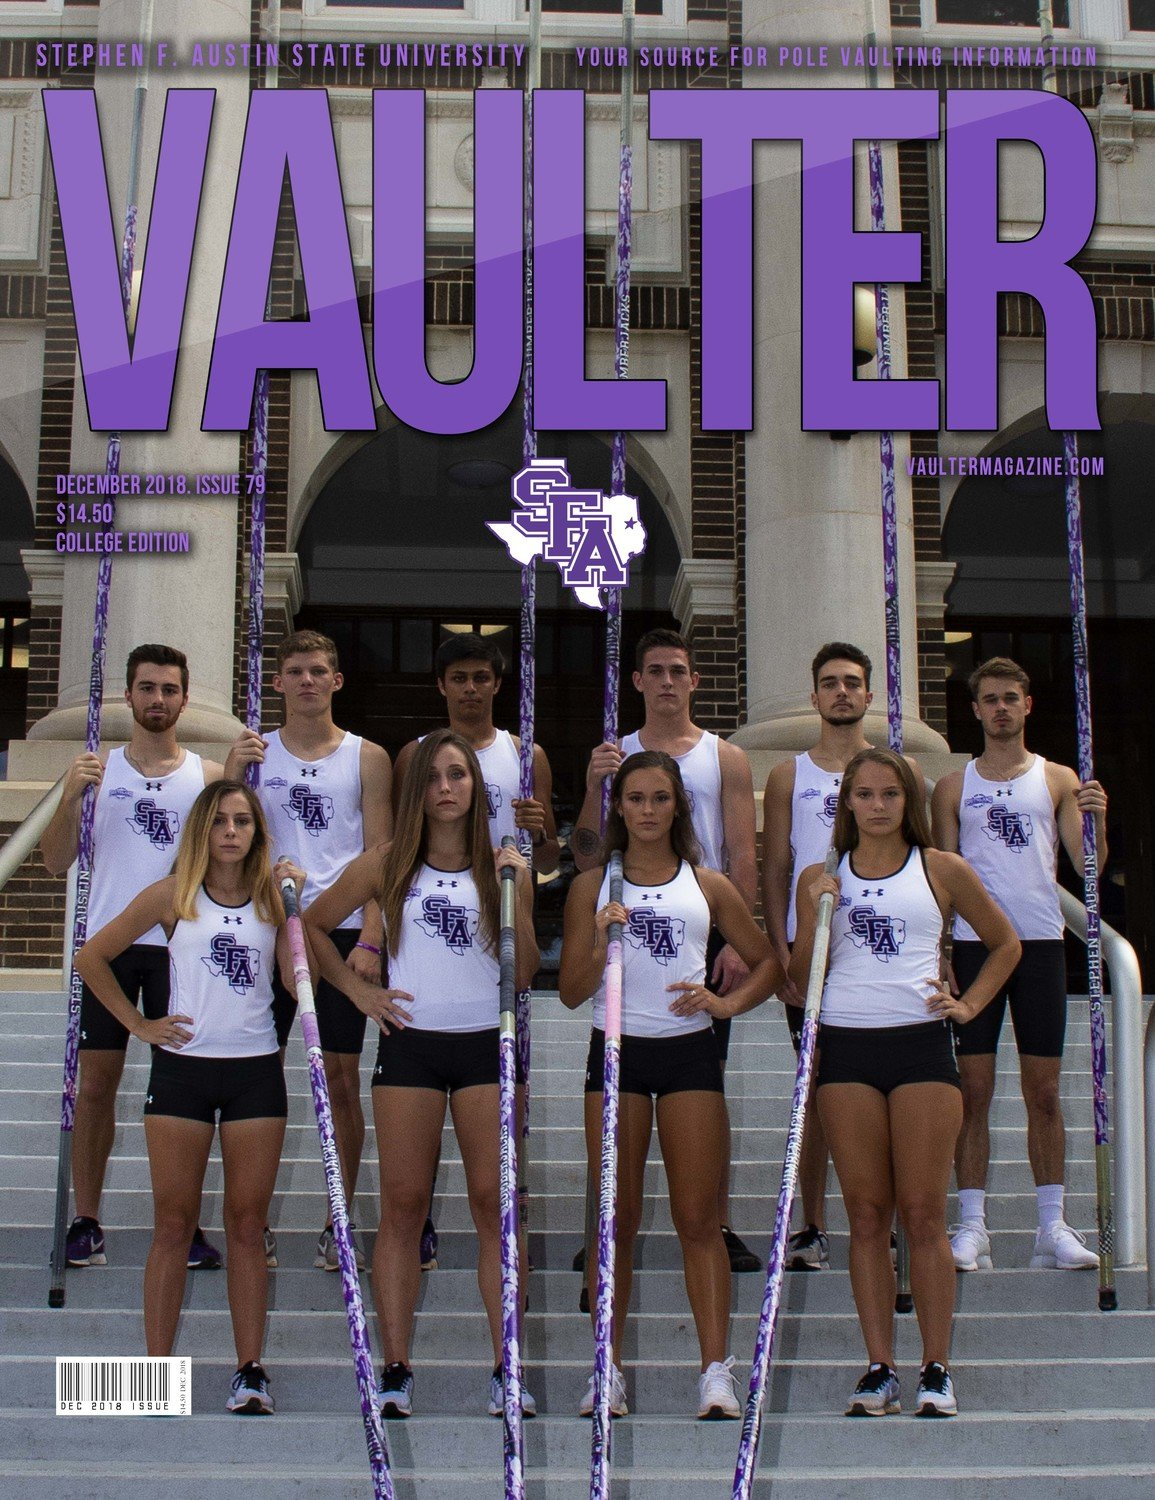 December 2018 Stephen F. Austin University Issue of Vaulter Magazine  U.S. Standard Mail